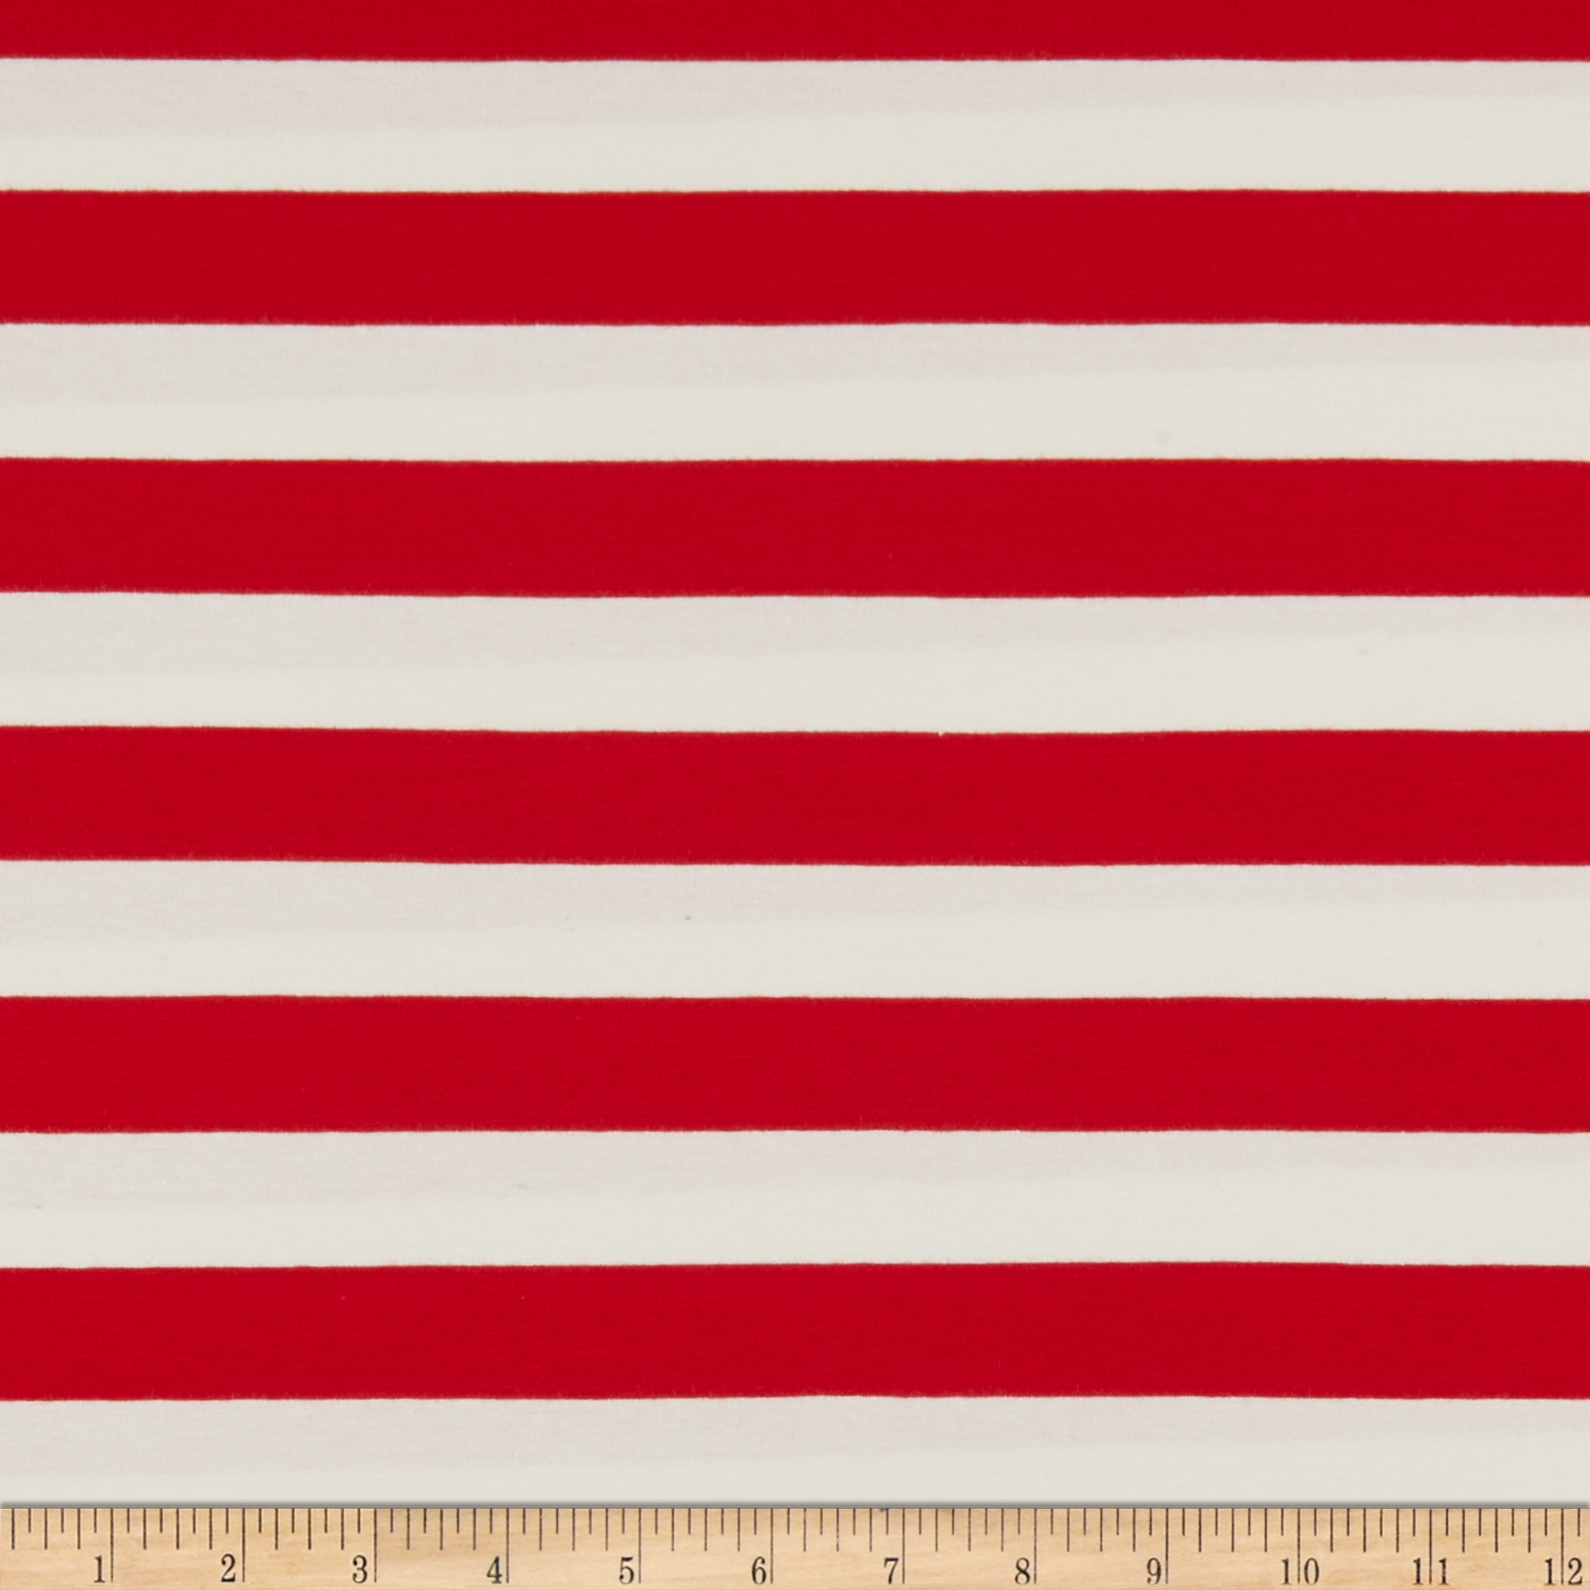 Art Gallery Striped Bold Red Jersey Knit Red & White Fabric